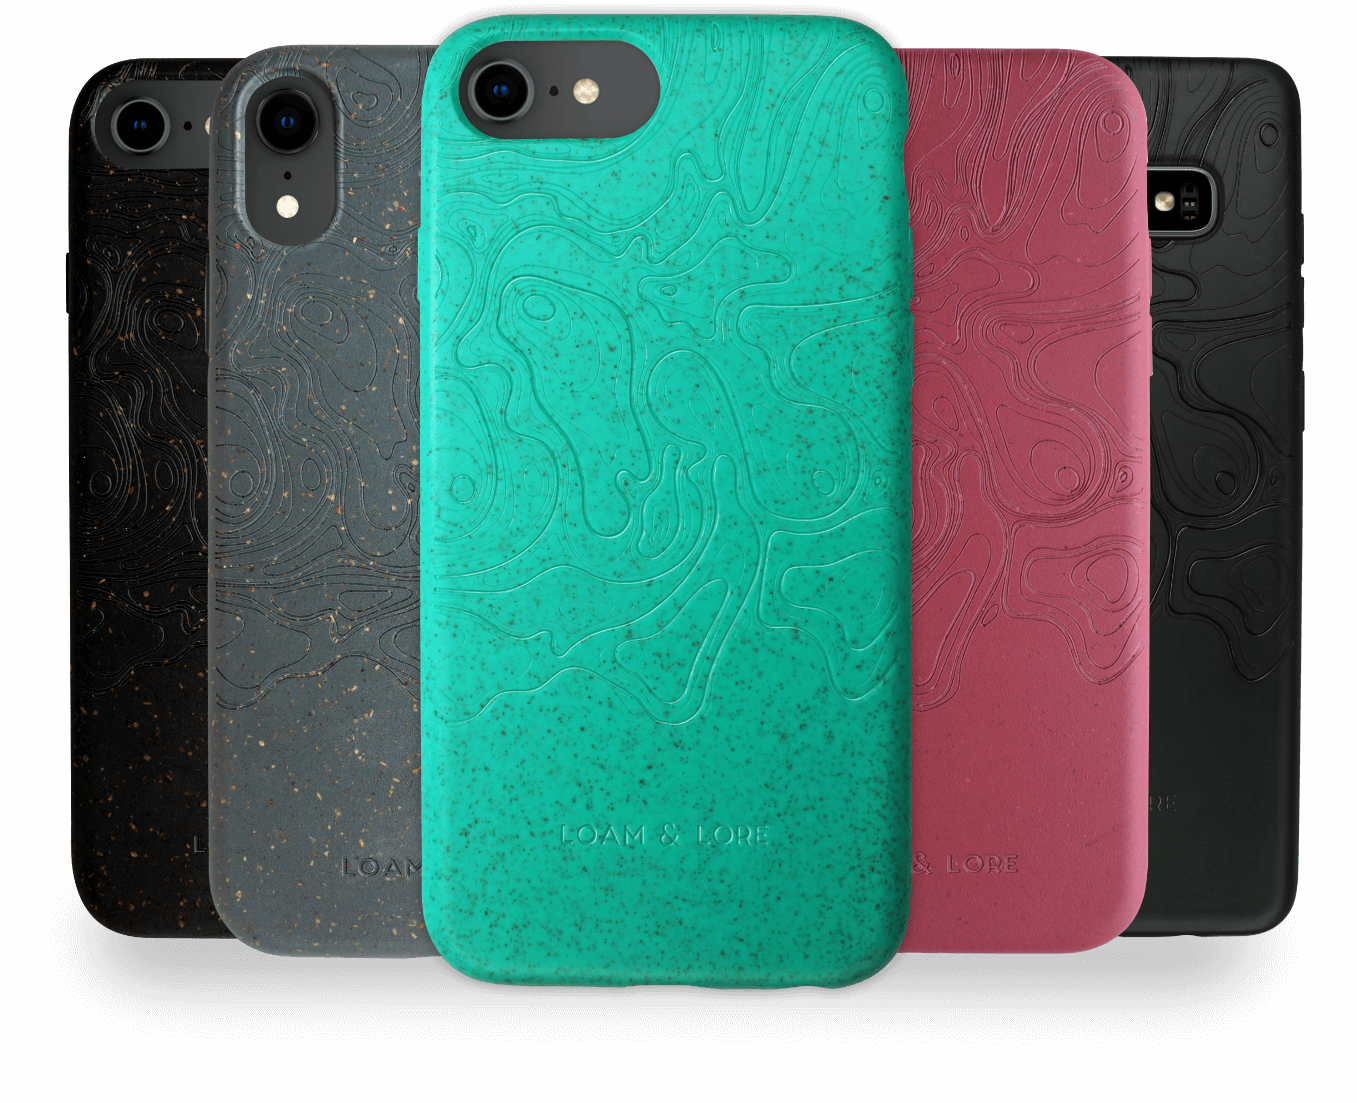 Loam and Lore range of sustainable eco phone cases